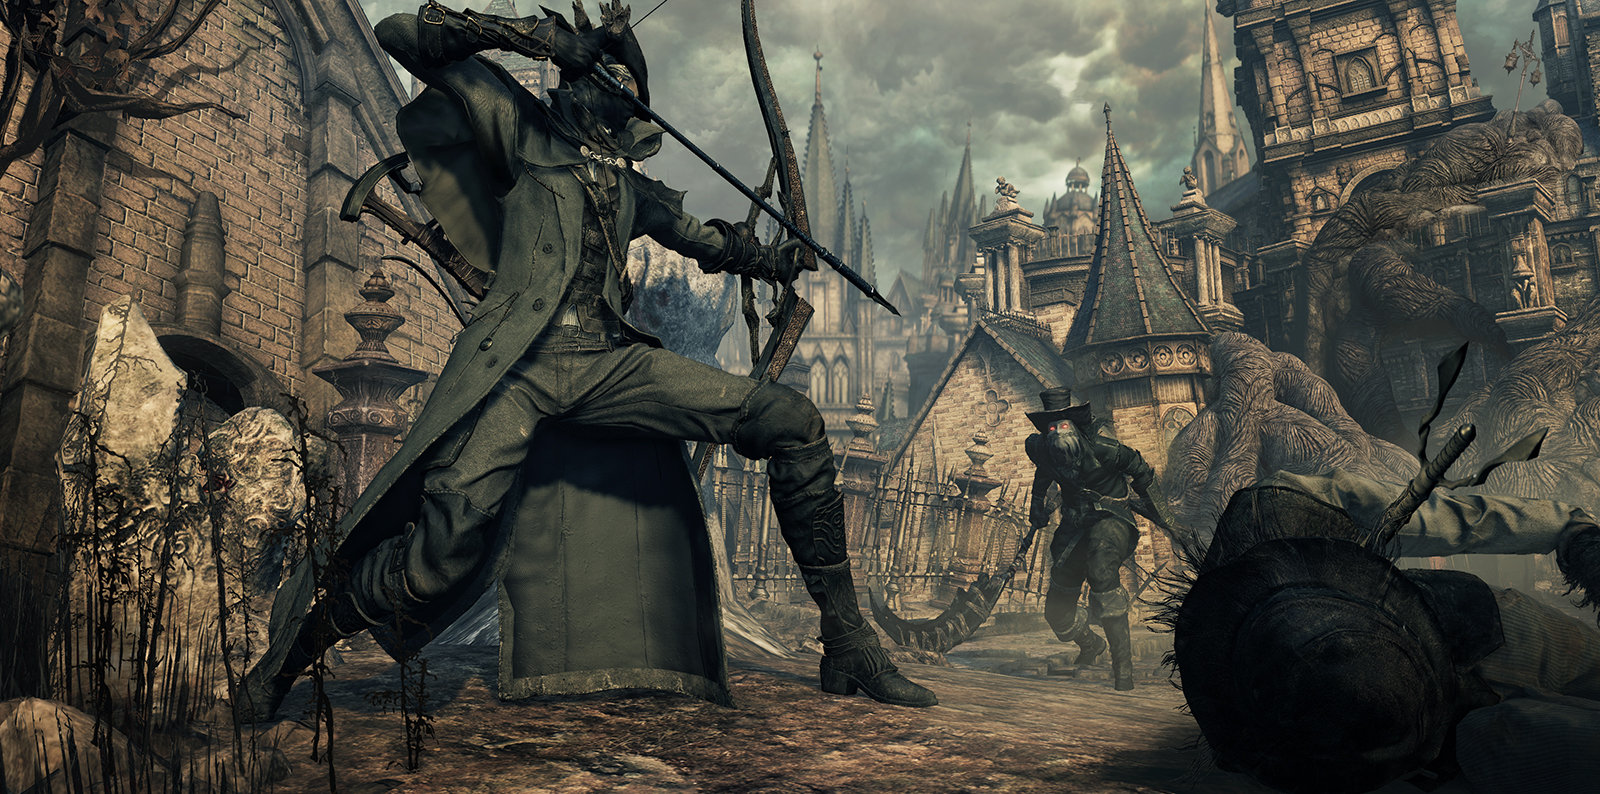 https://media.playstation.com/is/image/SCEA/bloodborne-the-old-hunters-page-section-03-ps4-us-30sep15?$BackgroundFeature_Large$